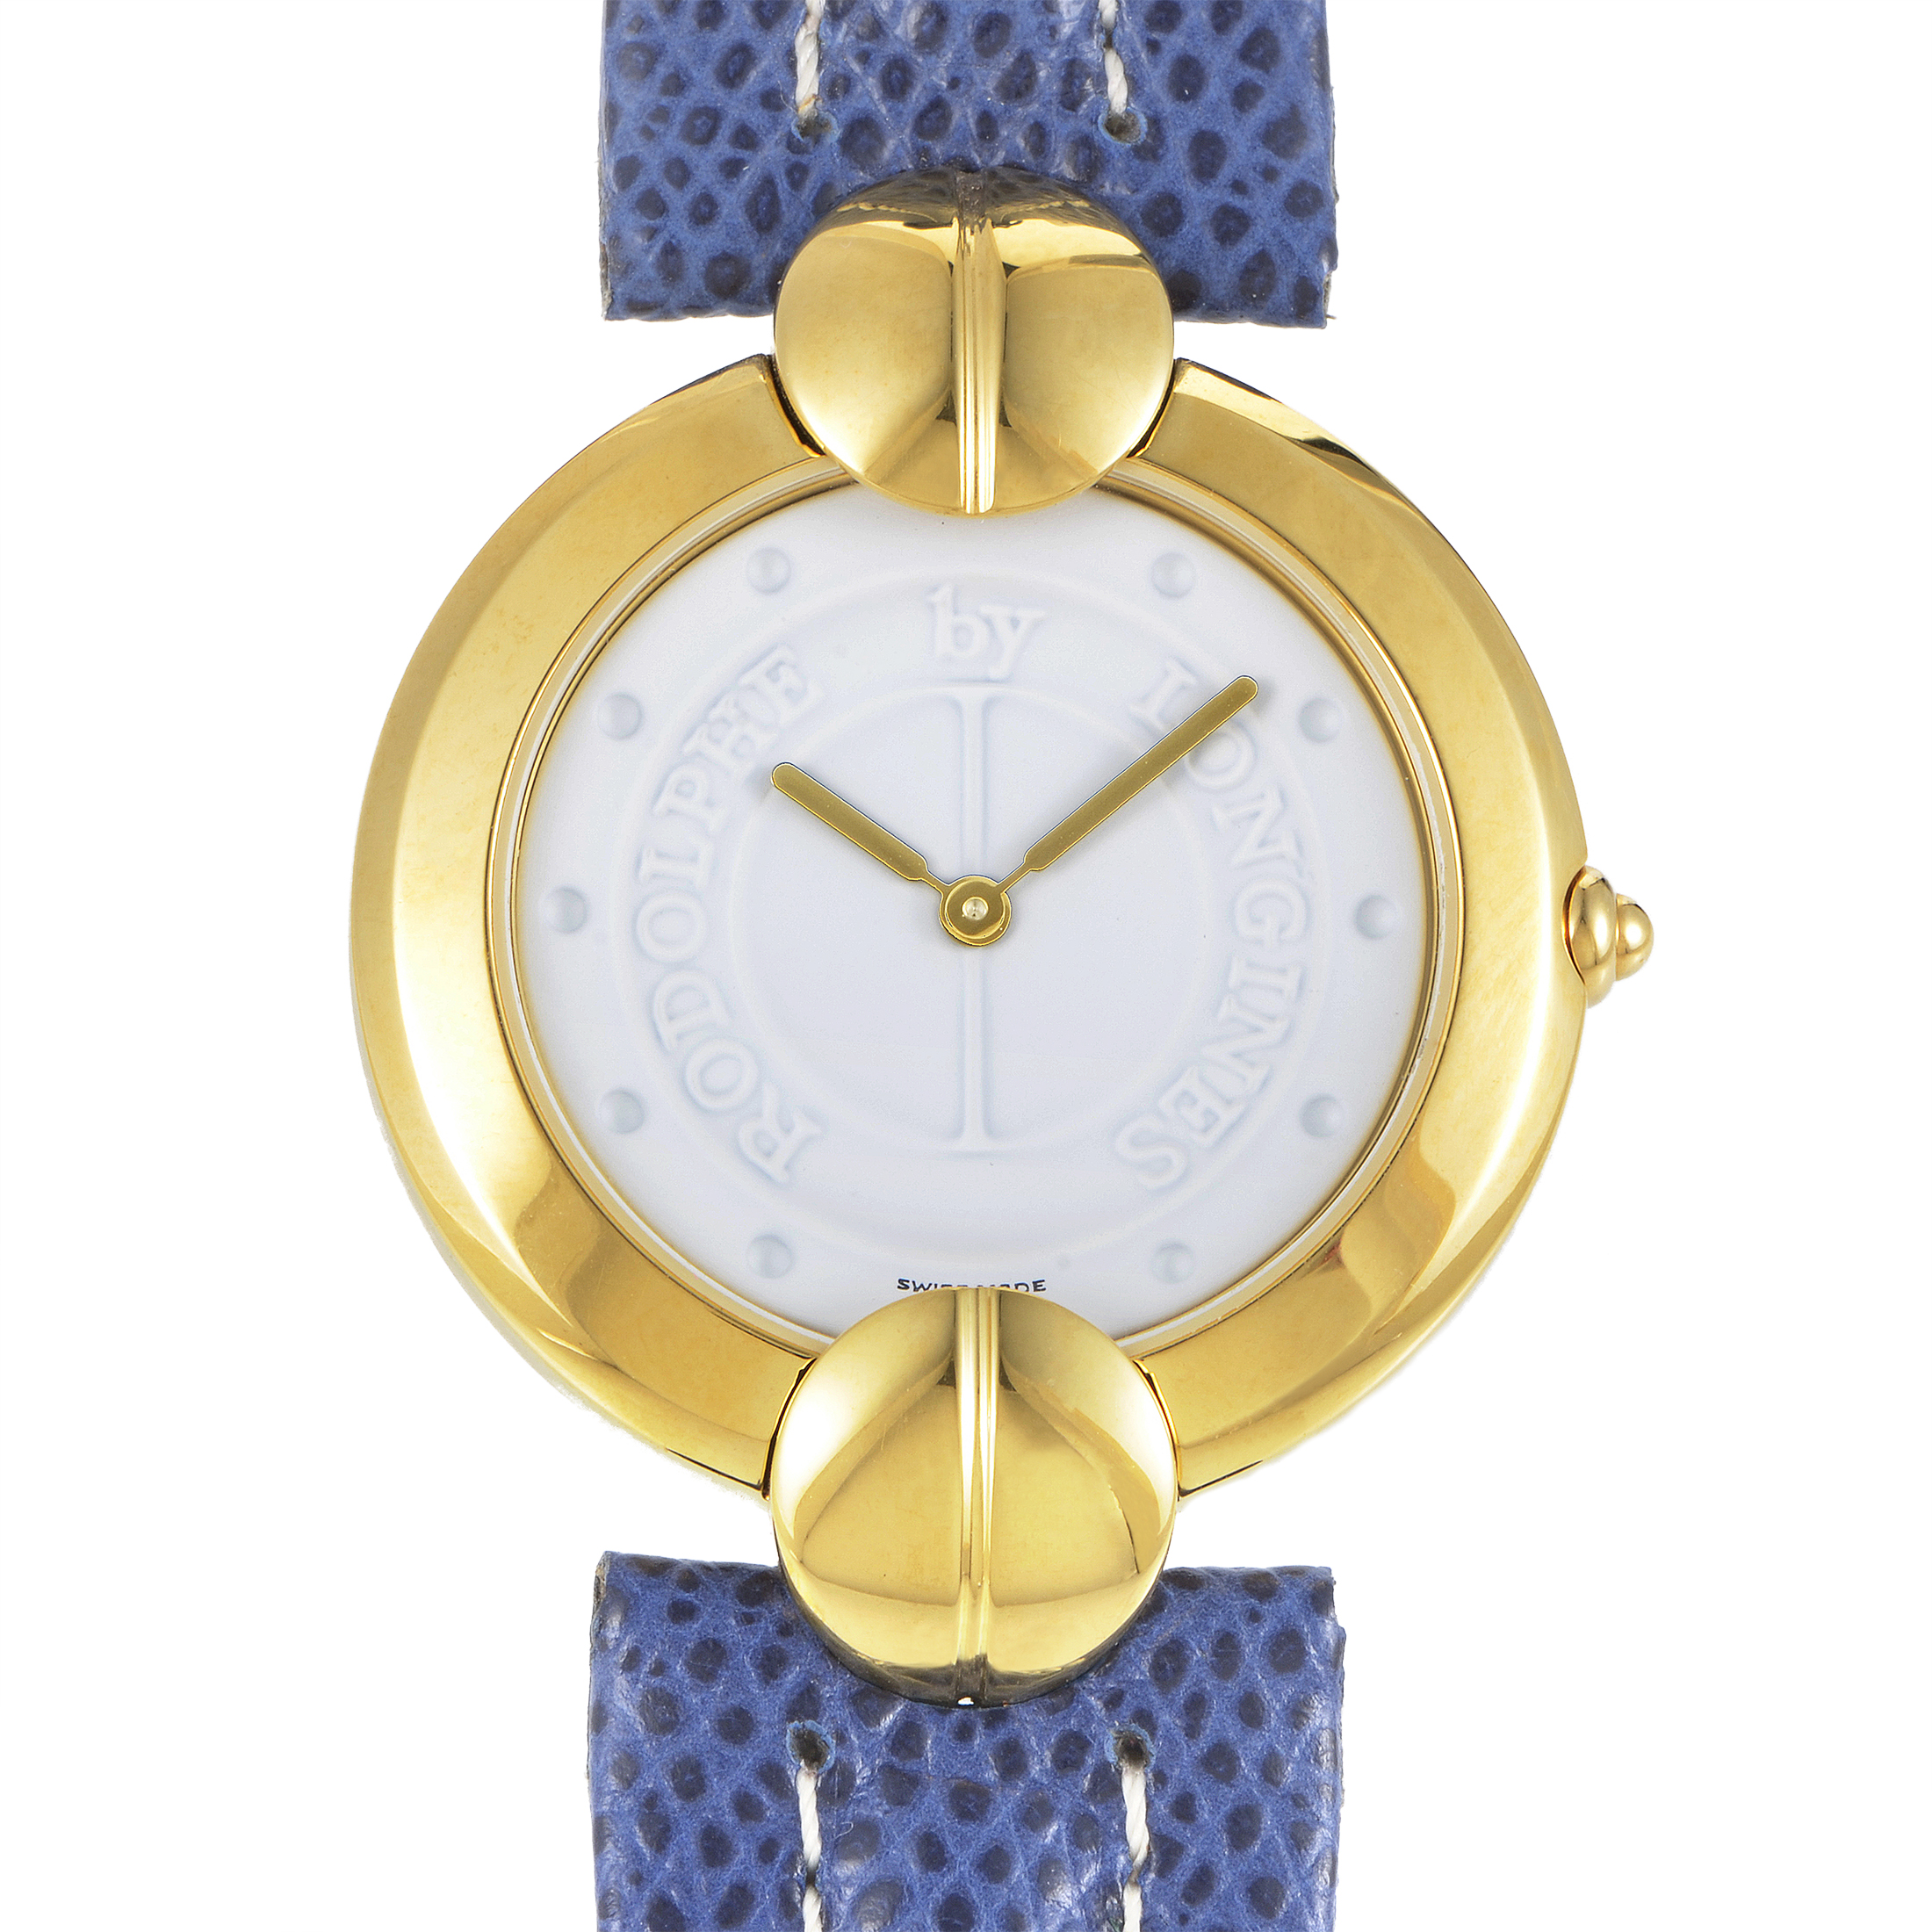 Rodolphe Women's Gold Plated Stainless Steel Quartz Watch L6.606.2.18.3